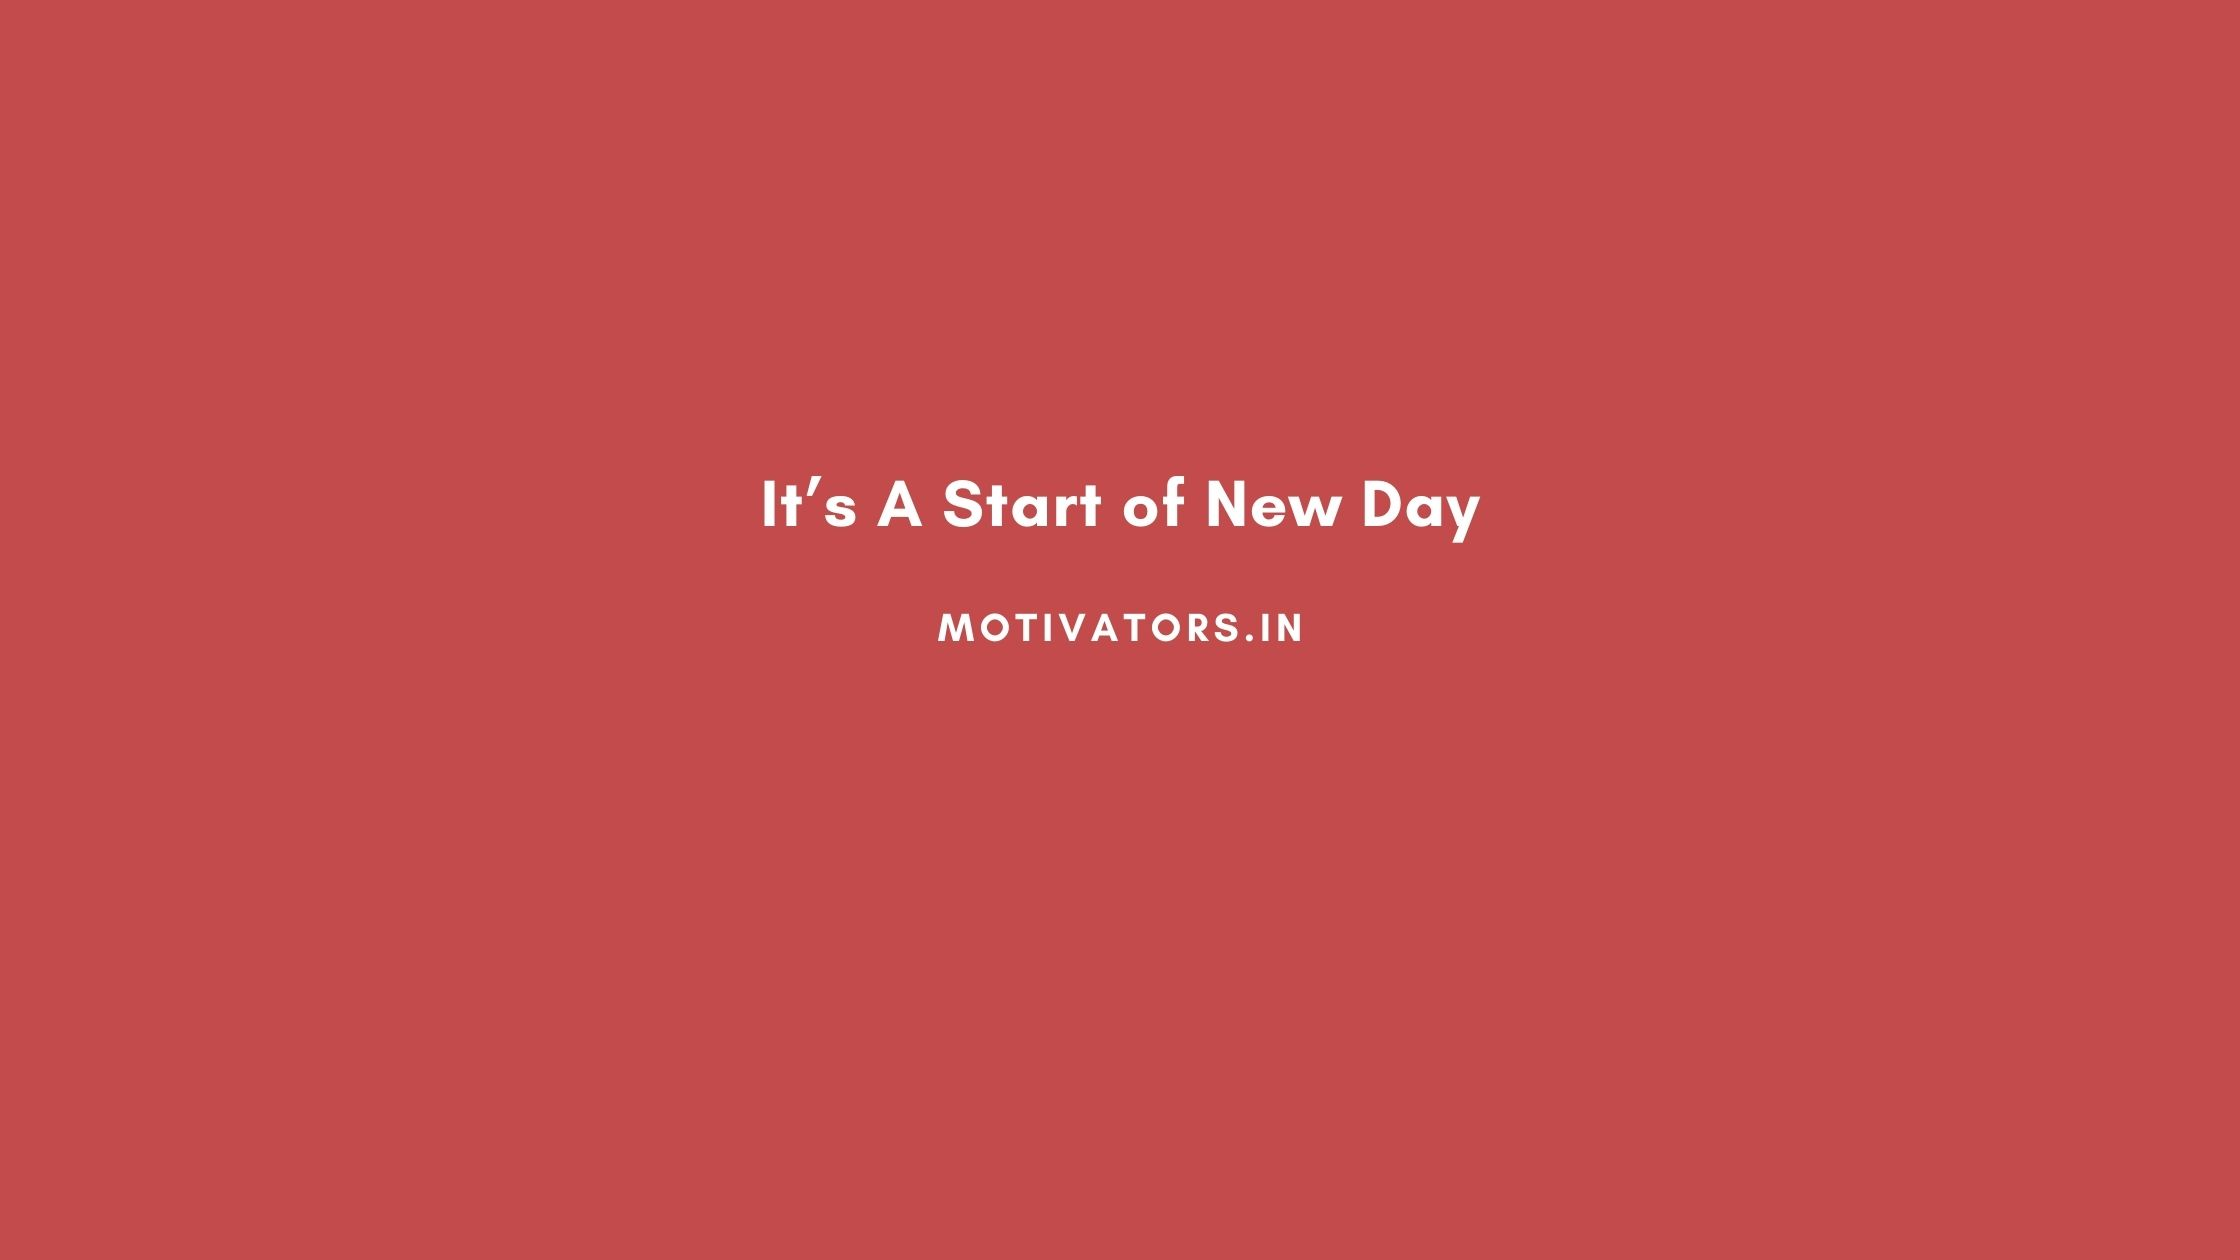 It's A Start of New Day